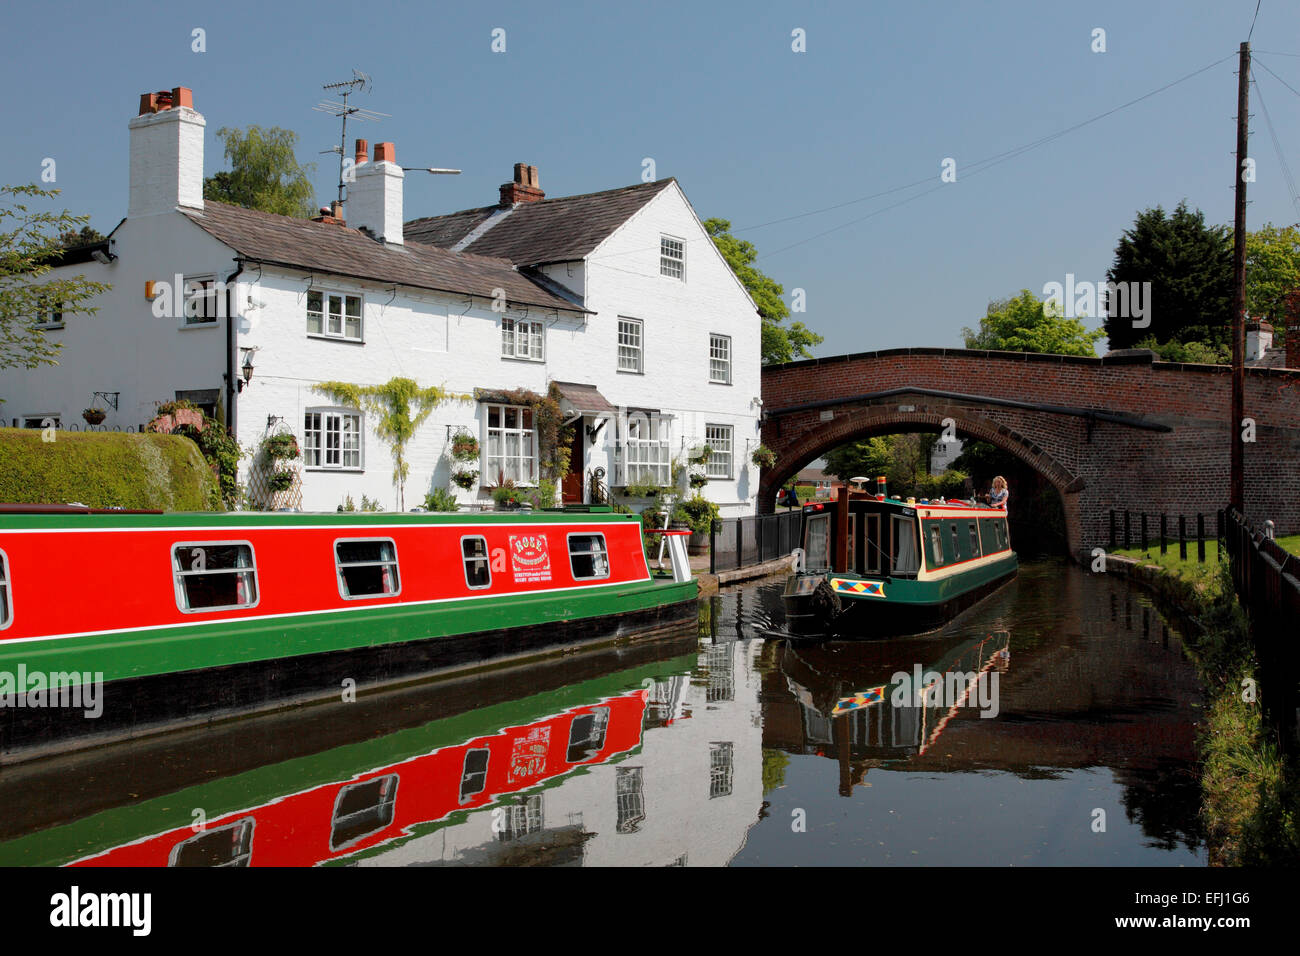 Narrowboats on the Bridgewater Canal by Lymm Bridge and Bridgewater House at Lymm in Cheshire - Stock Image